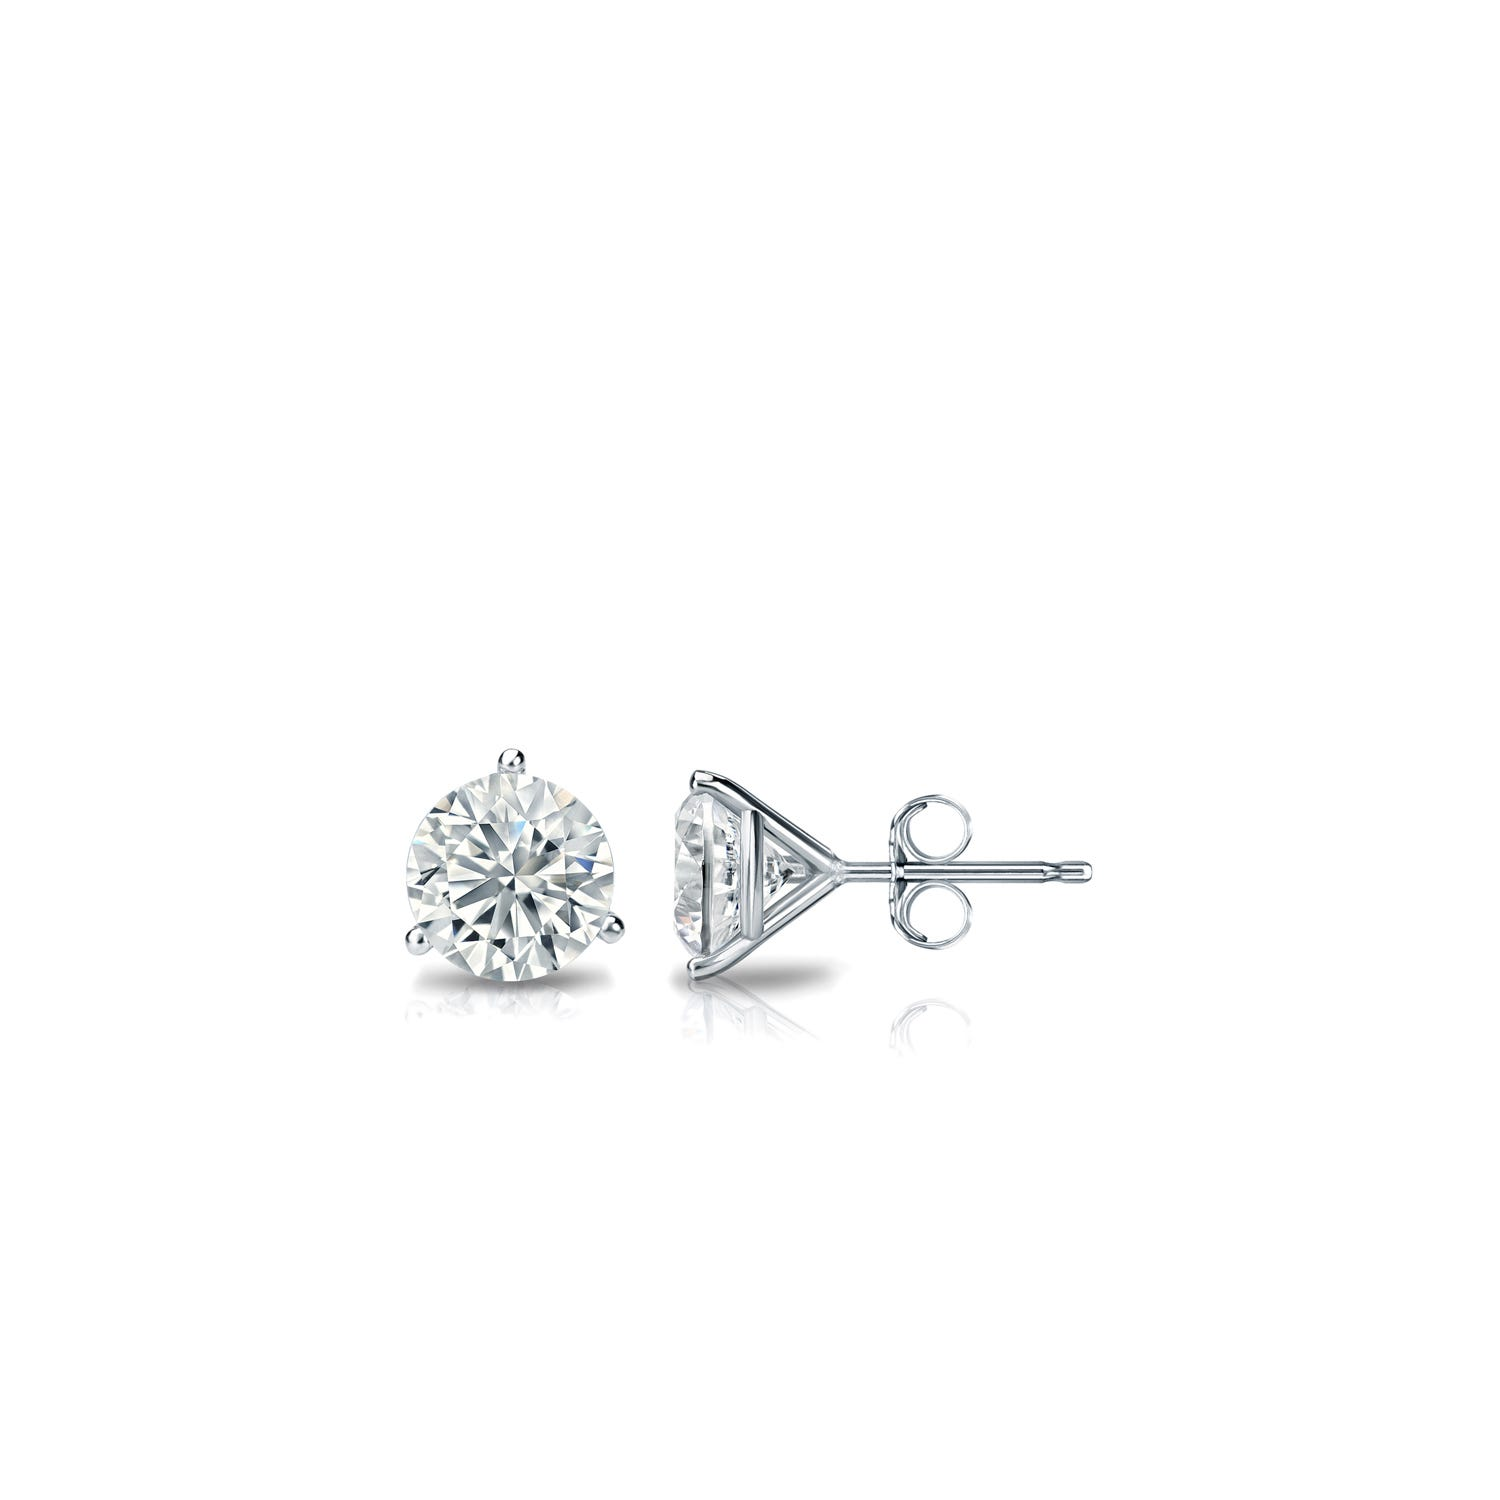 1/6 CTTW Round Diamond Solitaire Stud Earrings IJ SI2 in Platinum 3-Prong Setting